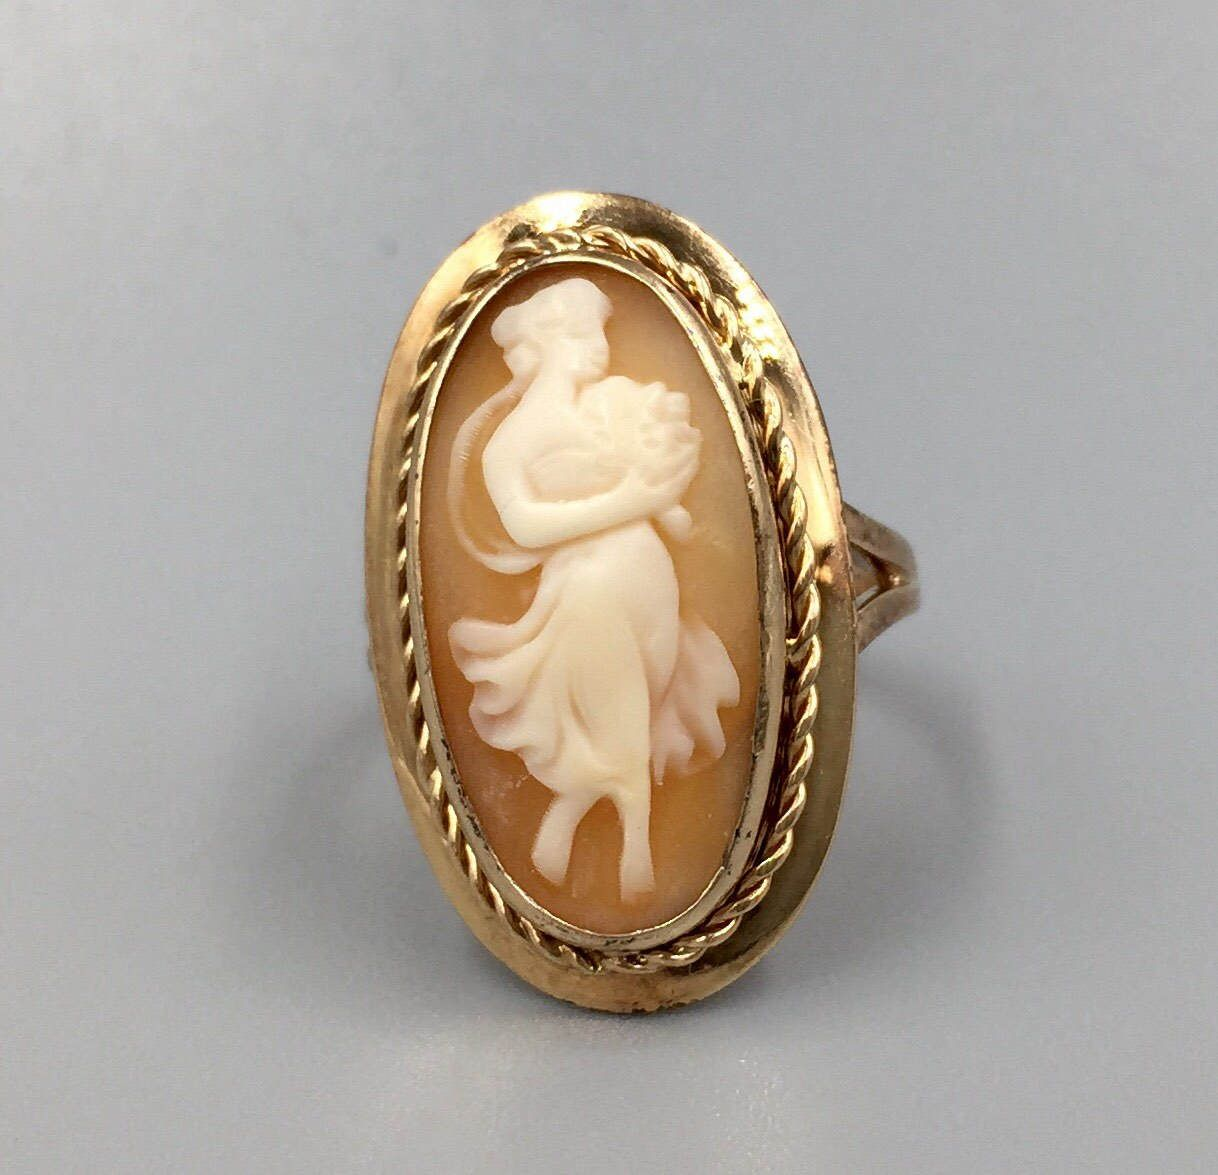 14K Gold Full Figure Maiden Cameo Ring Flora Goddess of